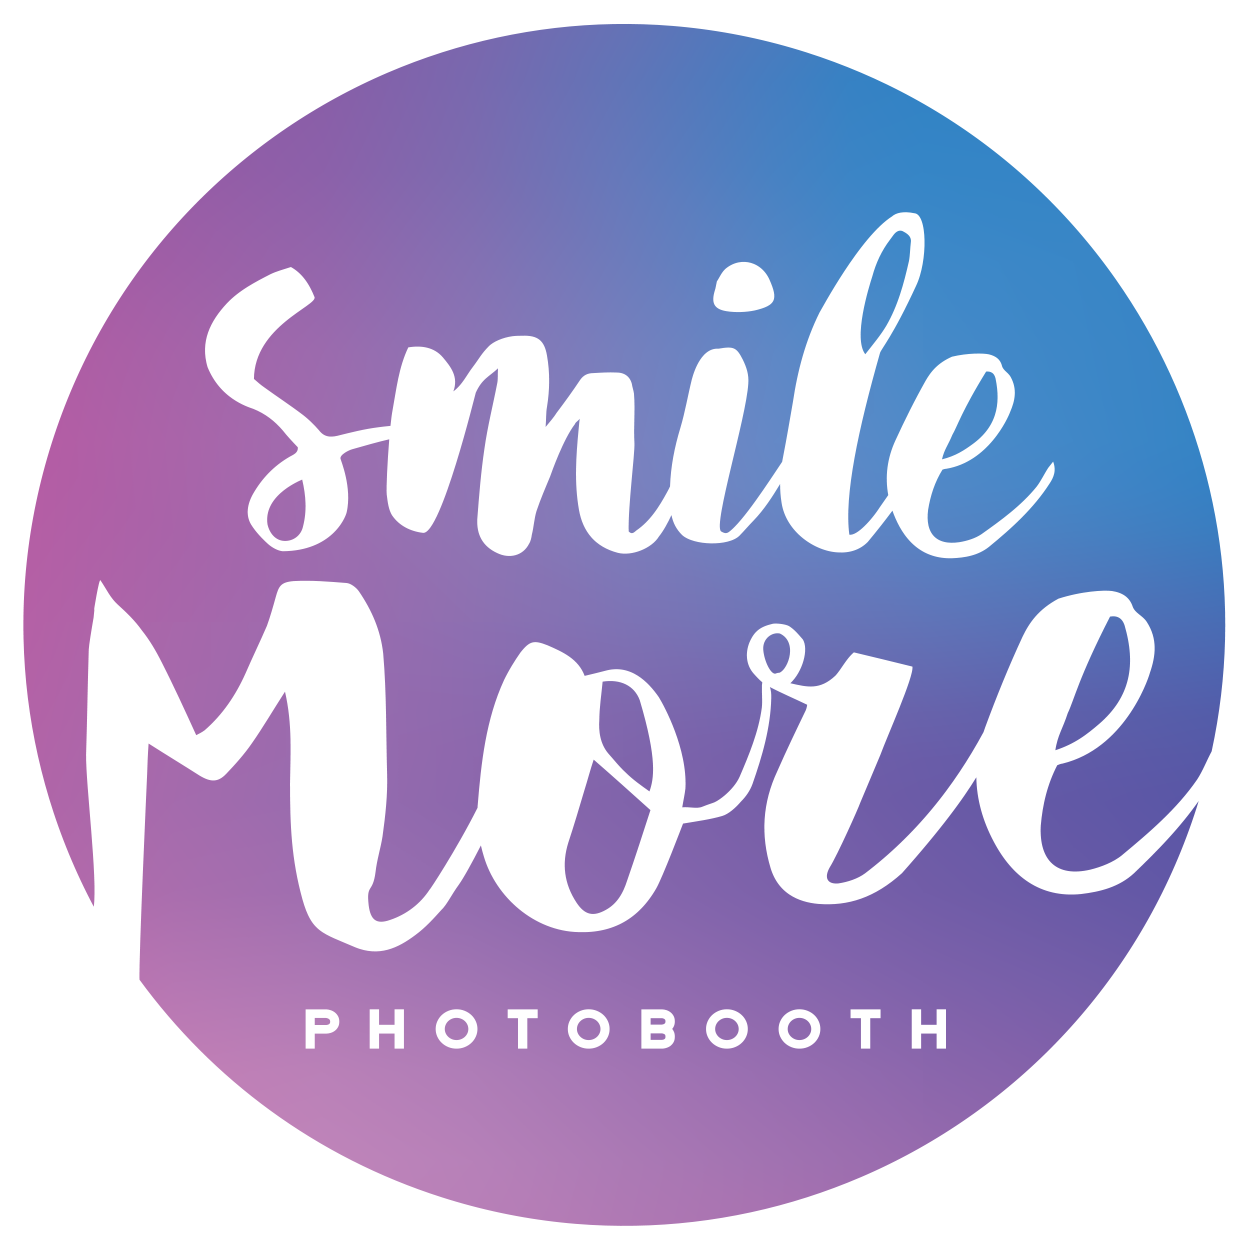 Smile more png. Photoboothsmile photobooth